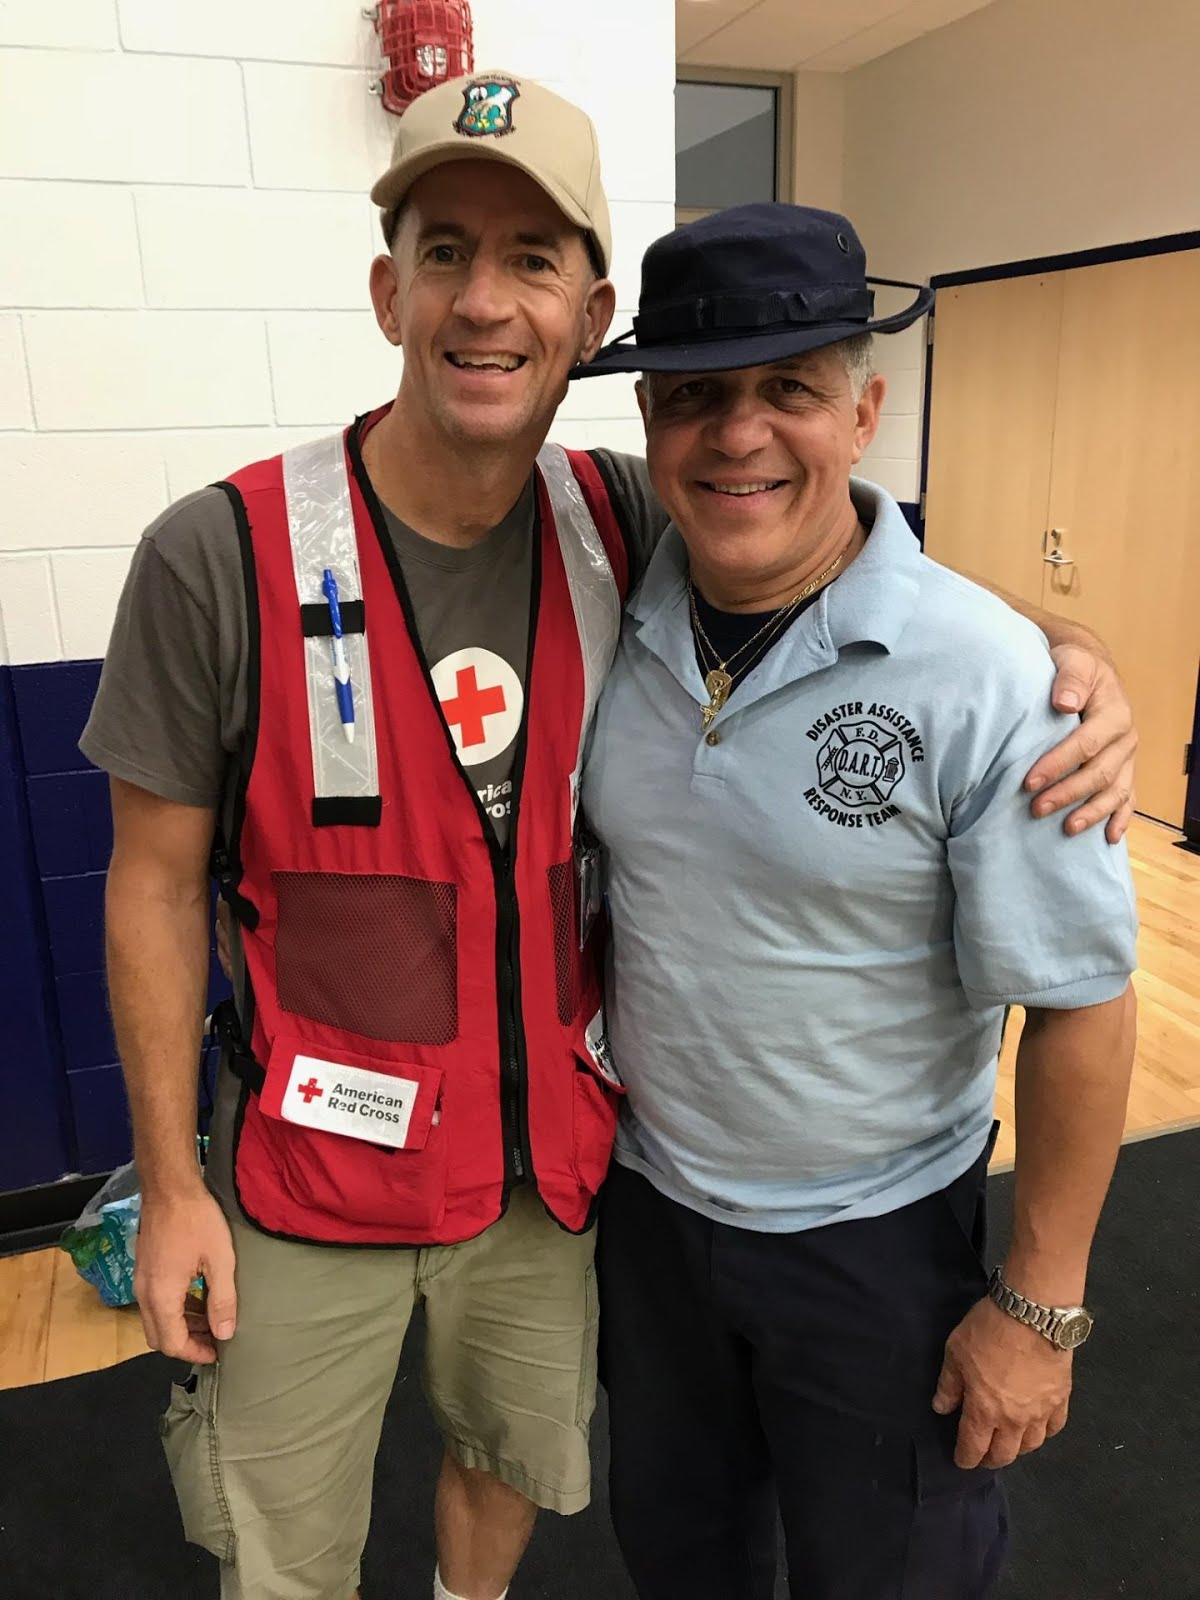 Thomas Q Kimball of Ridgefield, Connecticut with Lt. Ricco Diaz, of the FDNY DART